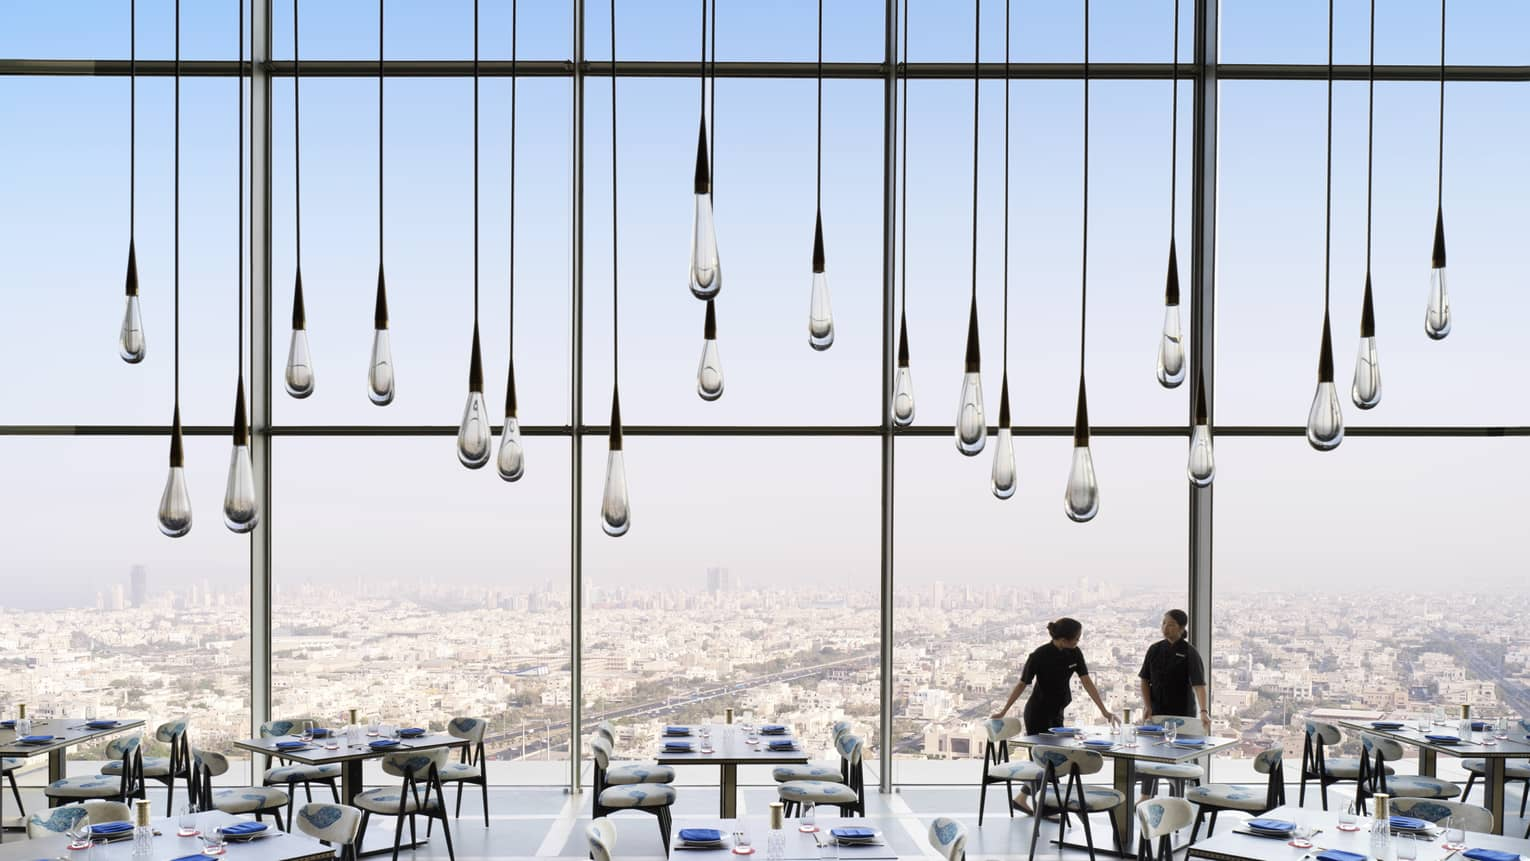 Row of raindrop-shaped glass hanging lights in front of floor-to-ceiling dining room window